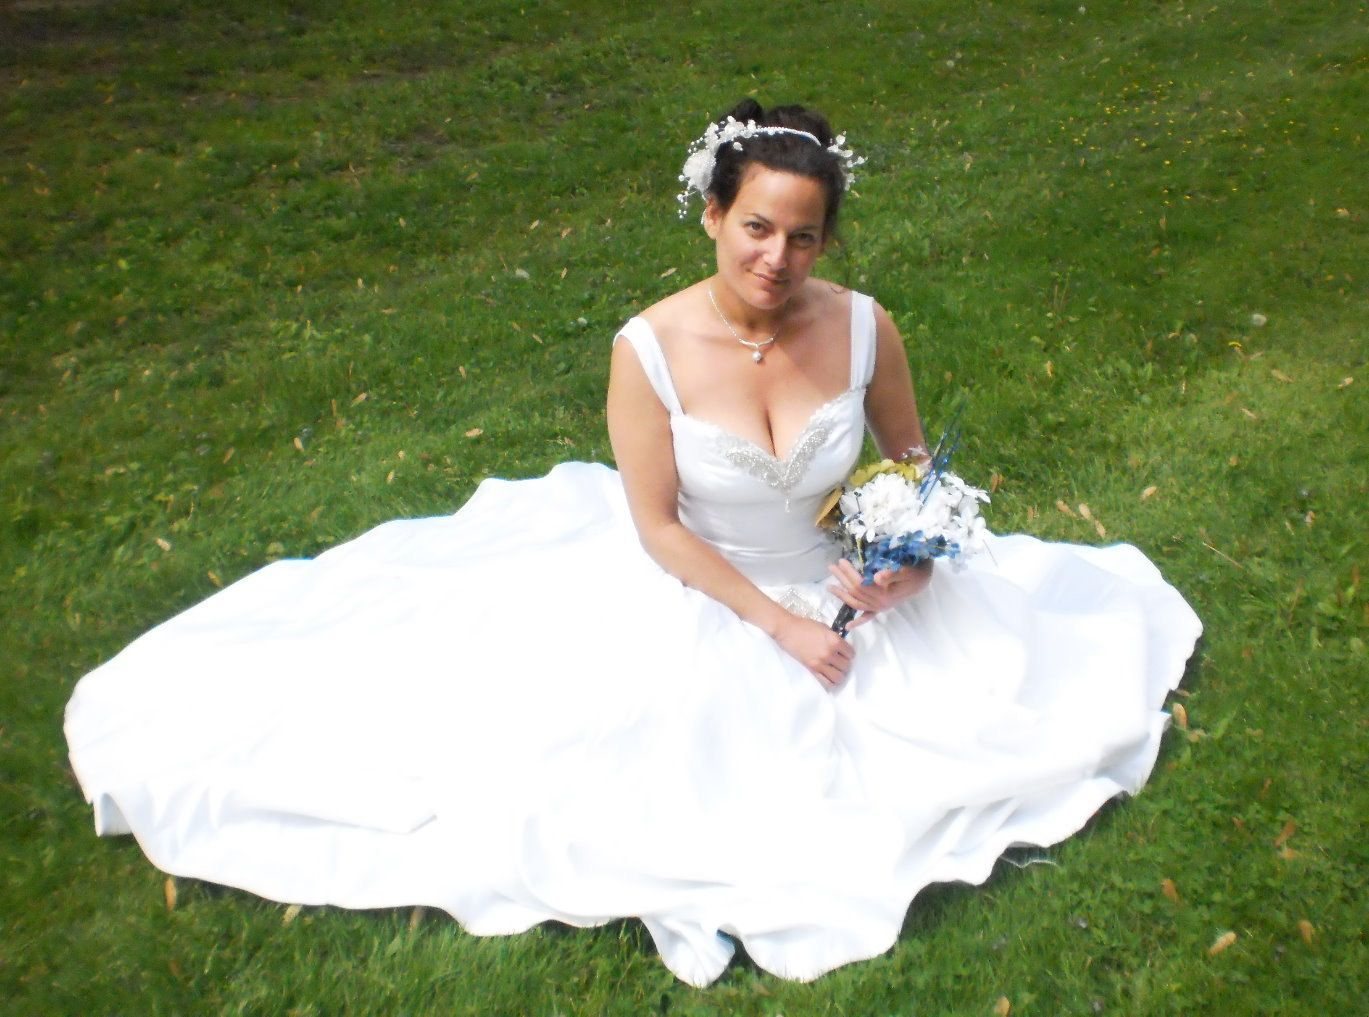 Green and white wedding dress  White Wedding Dress Ball Gown with Train and Corset by Shivati  The